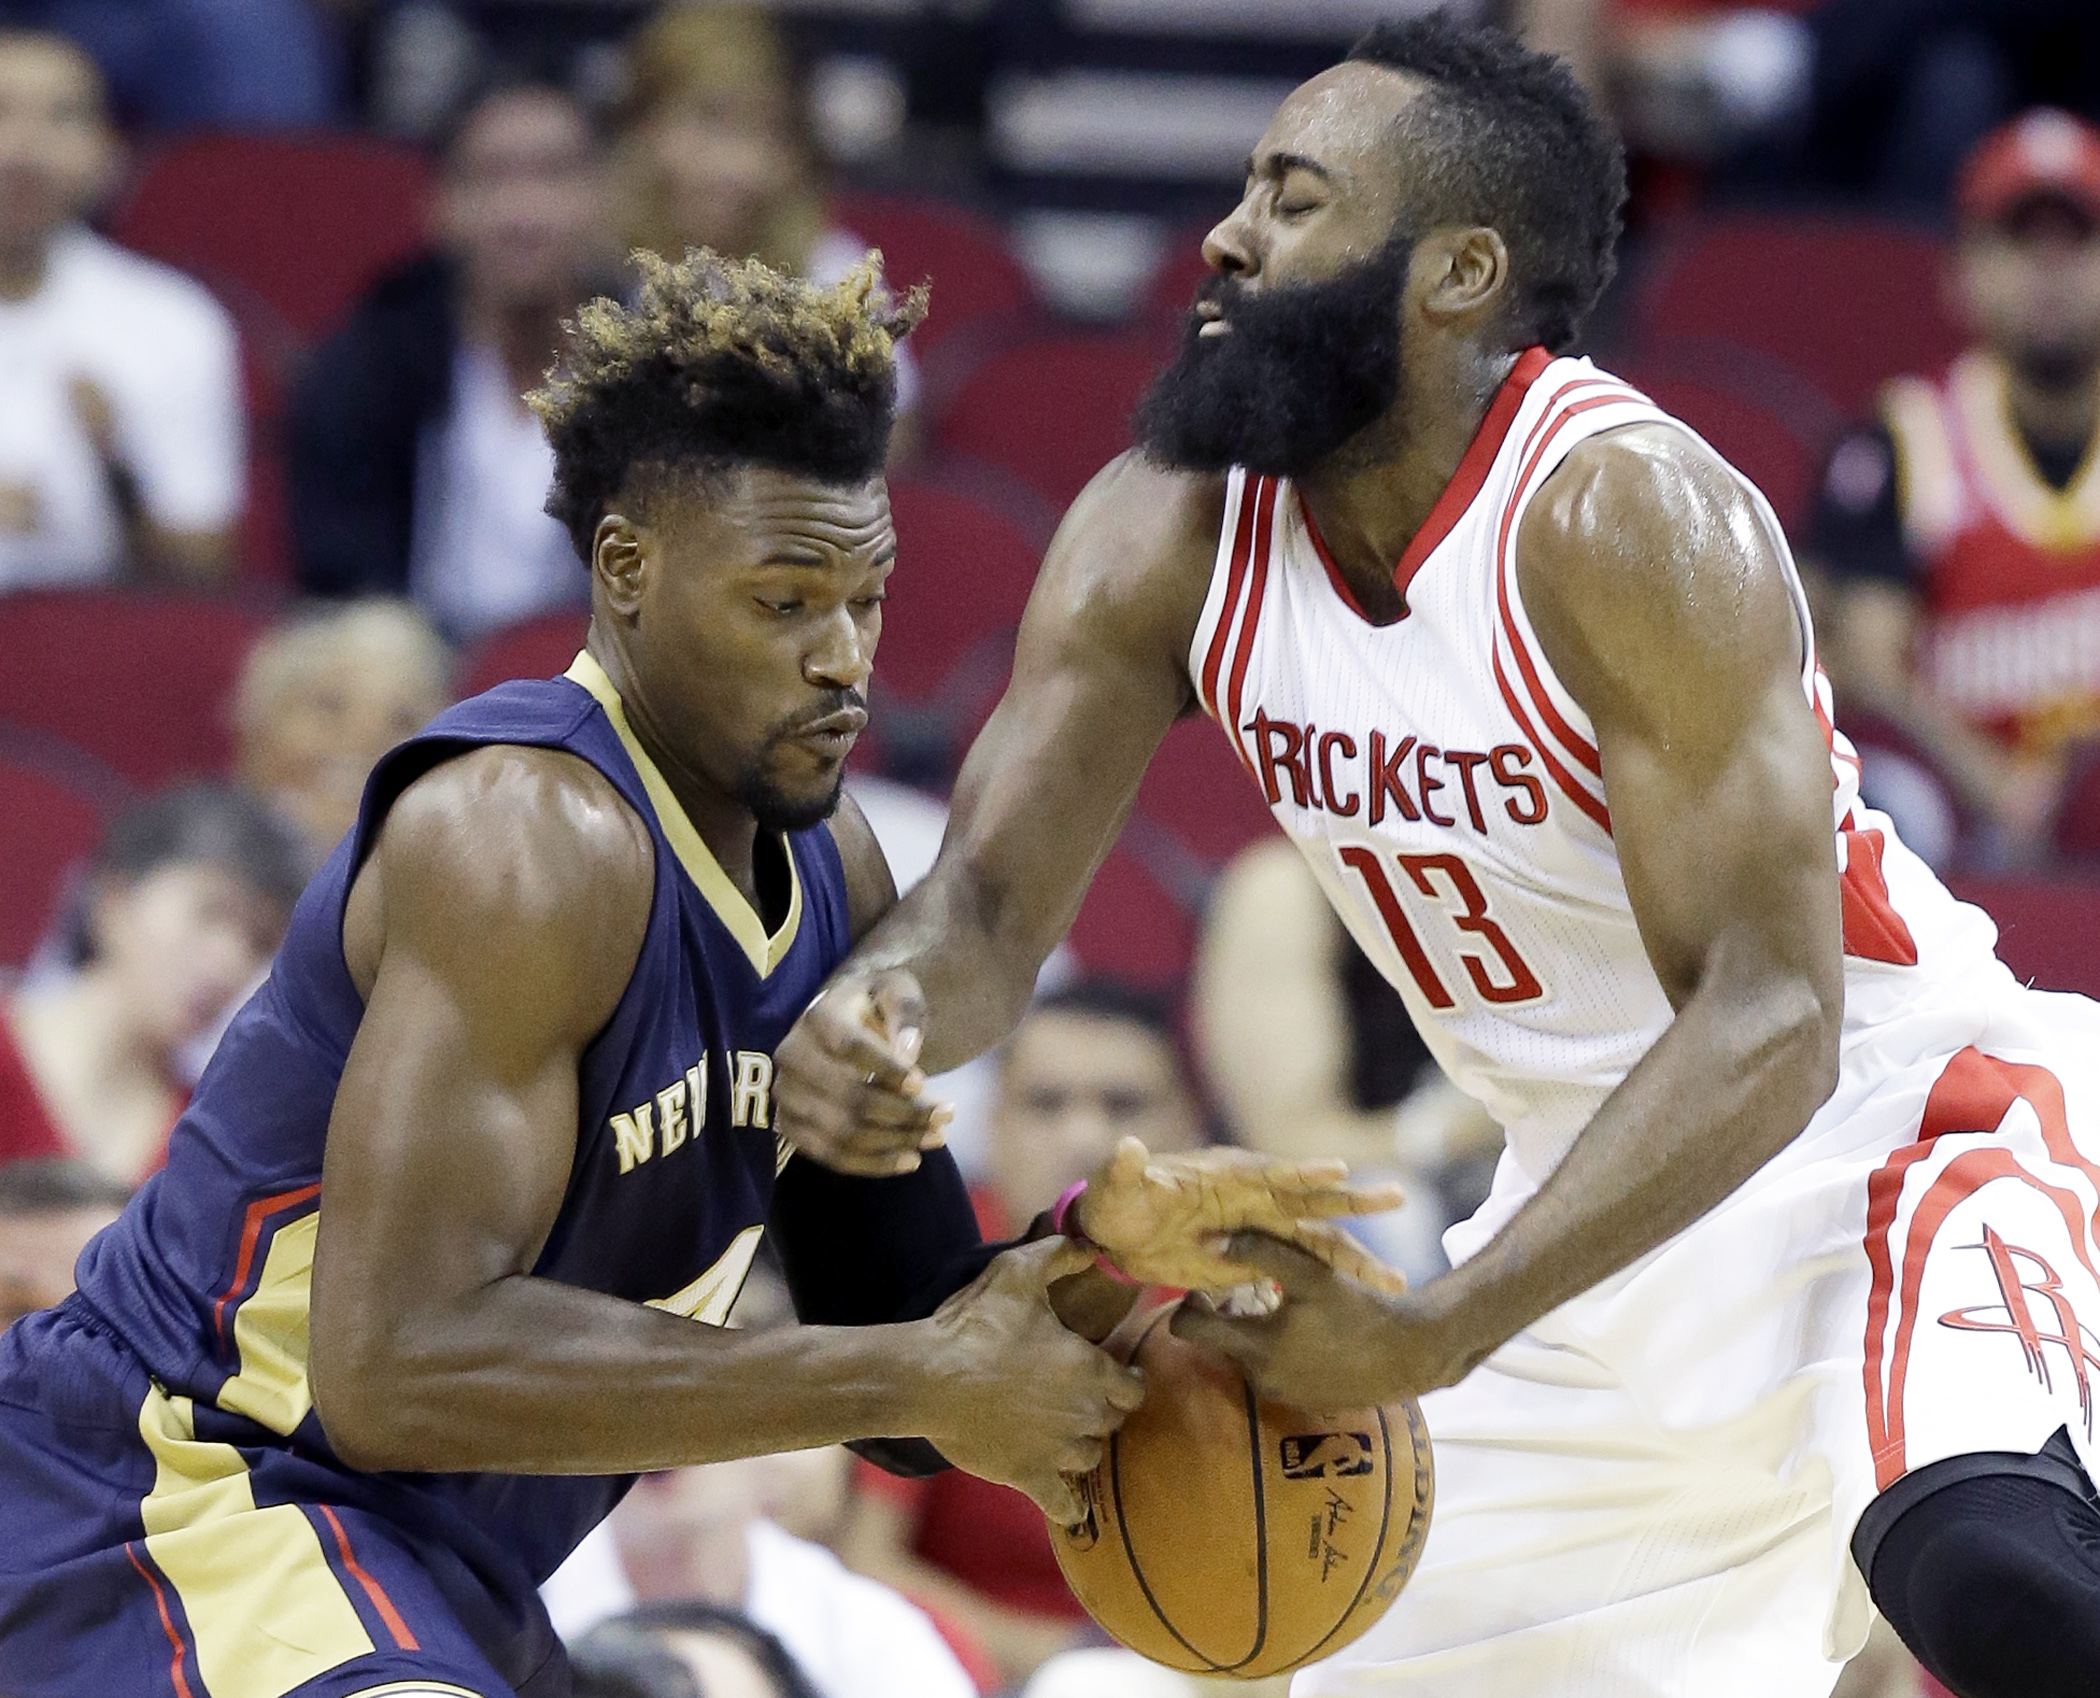 Houston Rockets' James Harden (13) and New Orleans Pelicans' Jeff Adrien grab for the ball in the first half of a preseason NBA basketball game Monday, Oct. 19, 2015, in Houston. (AP Photo/Pat Sullivan)